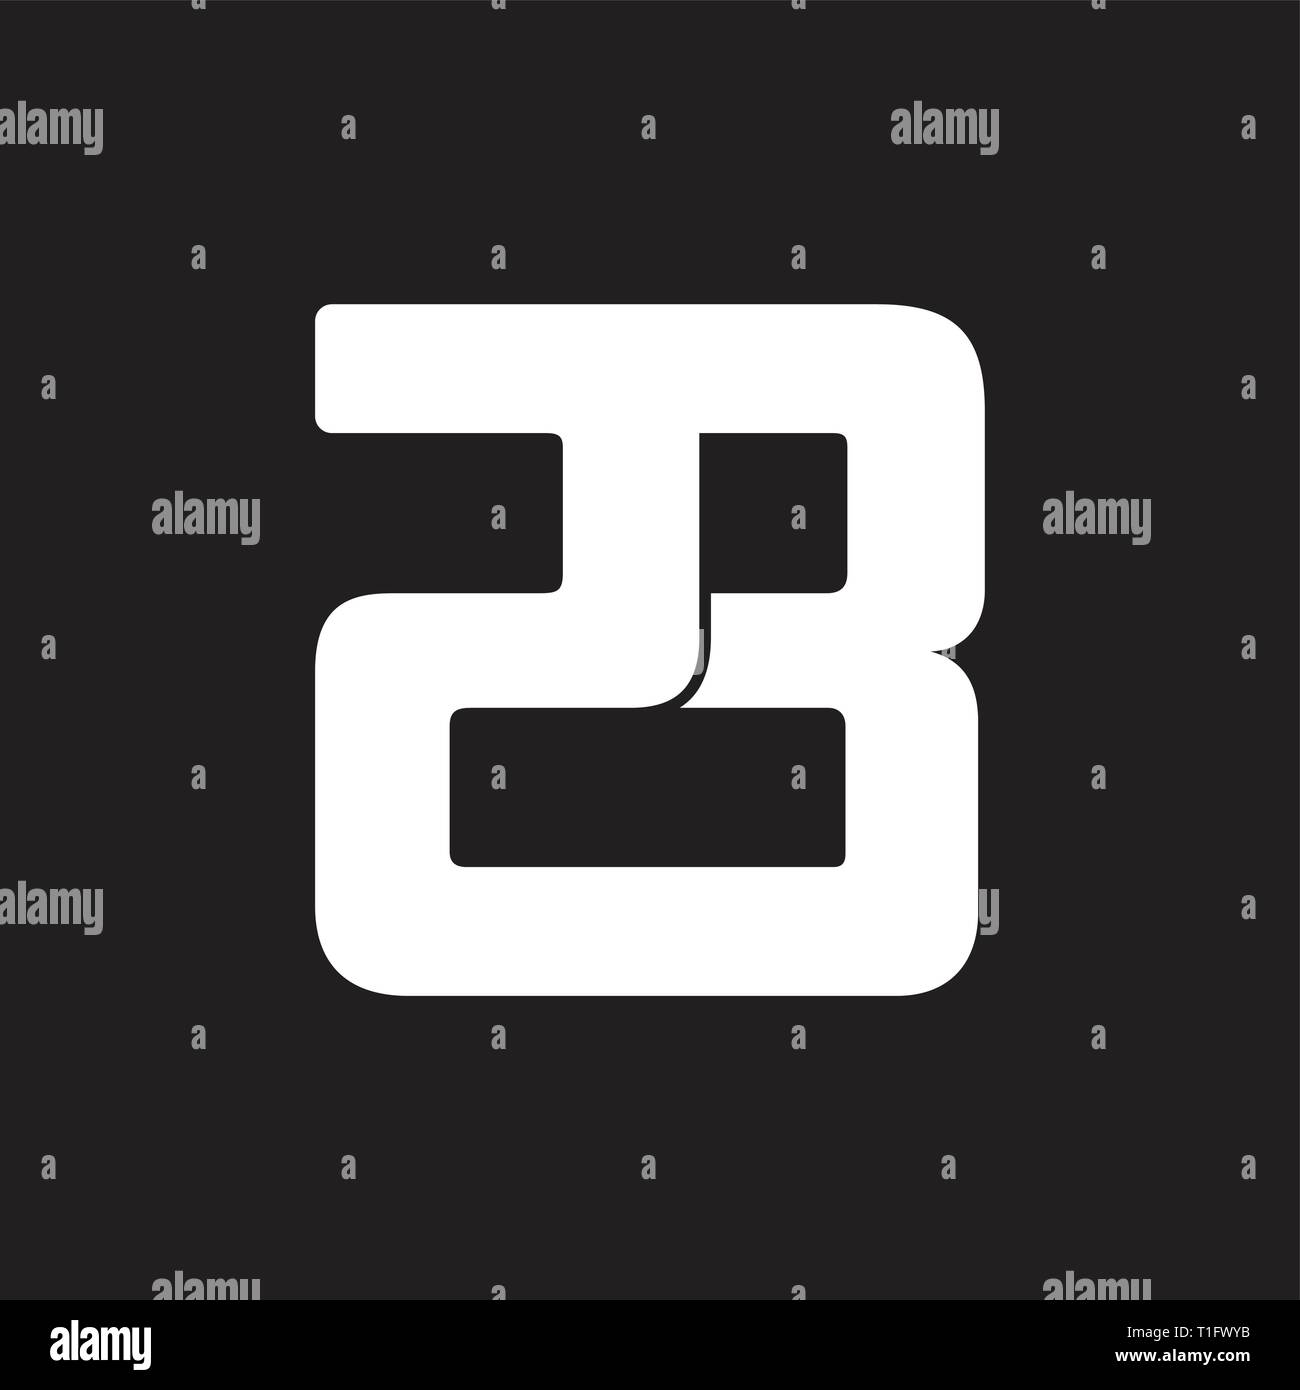 number 23 simple geometric line logo vector - Stock Vector